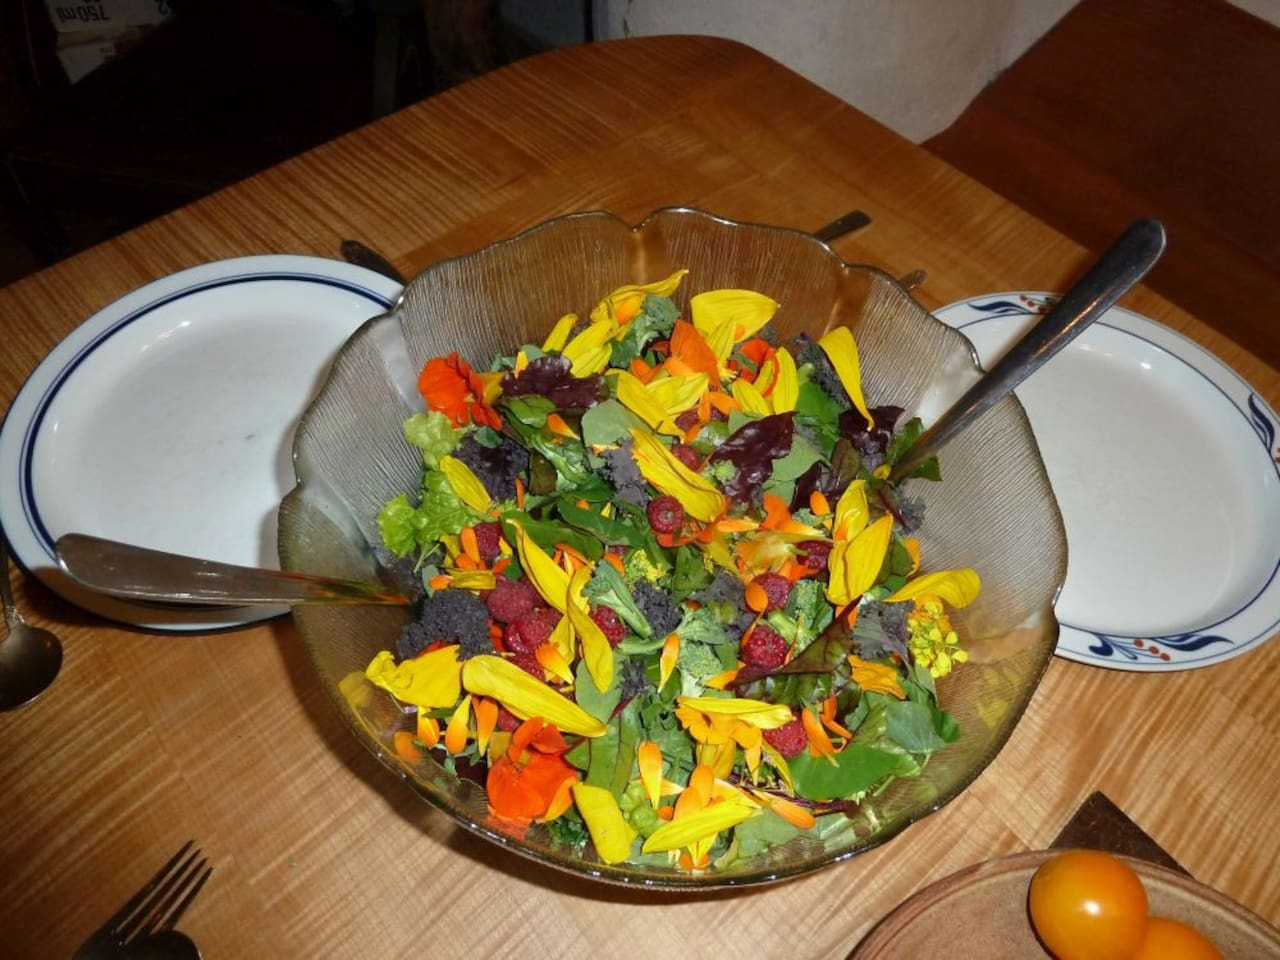 A salad with a little of everything from the garden